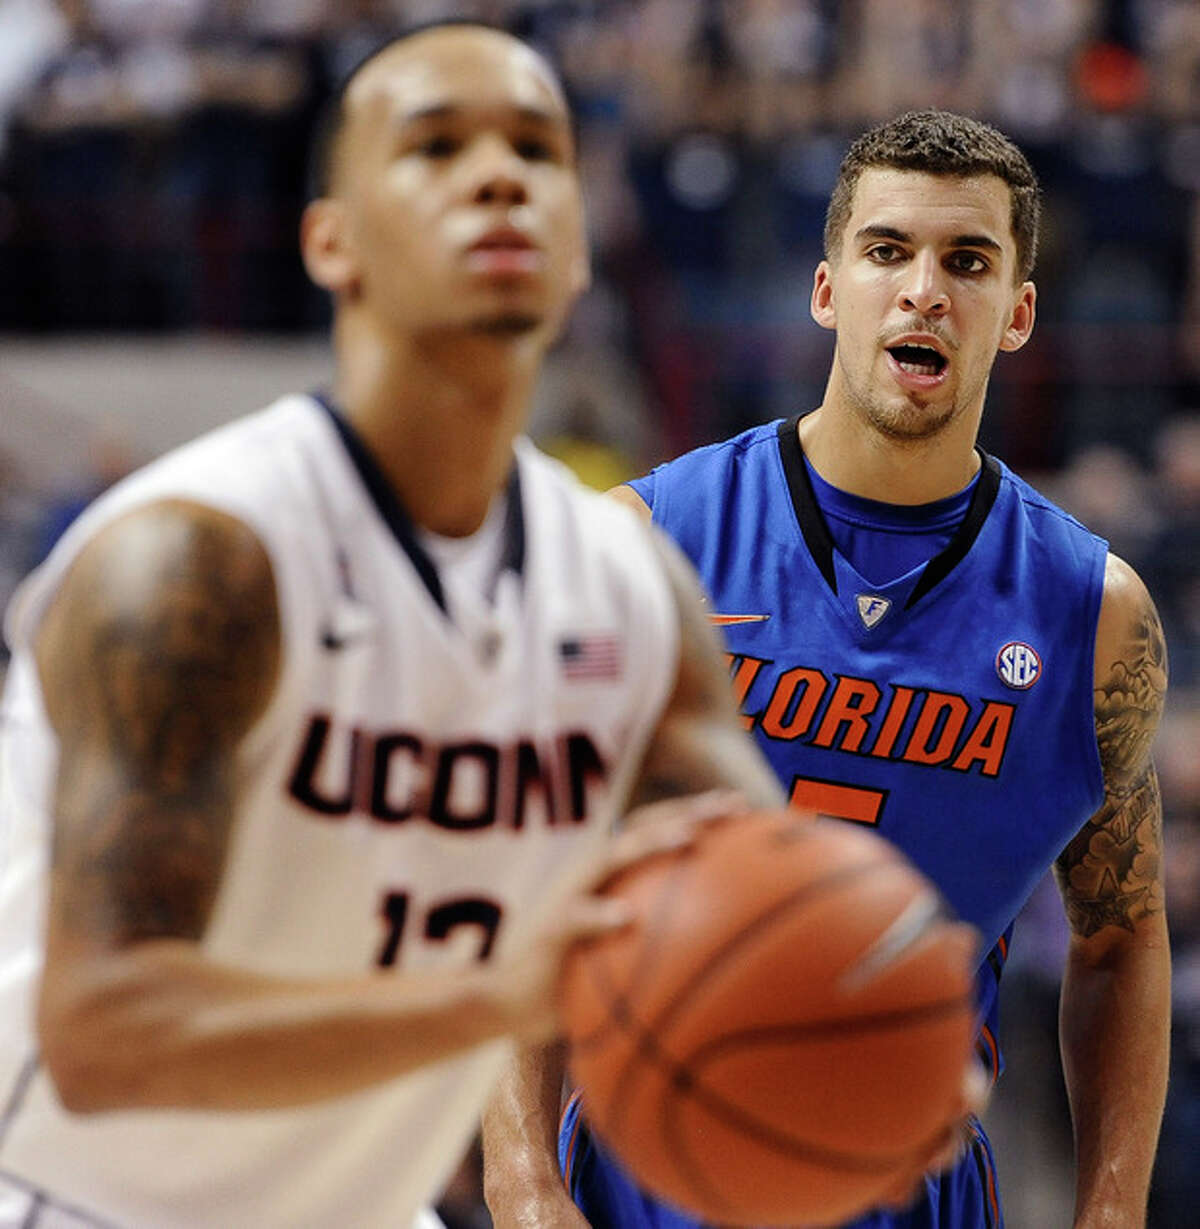 Florida's Scottie Wilbekin, right, watches Connecticut's Shabazz Napier shoot a free throw during the first half of an NCAA college basketball game, Monday, Dec. 2, 2013, in Storrs, Conn. (AP Photo/Jessica Hill)